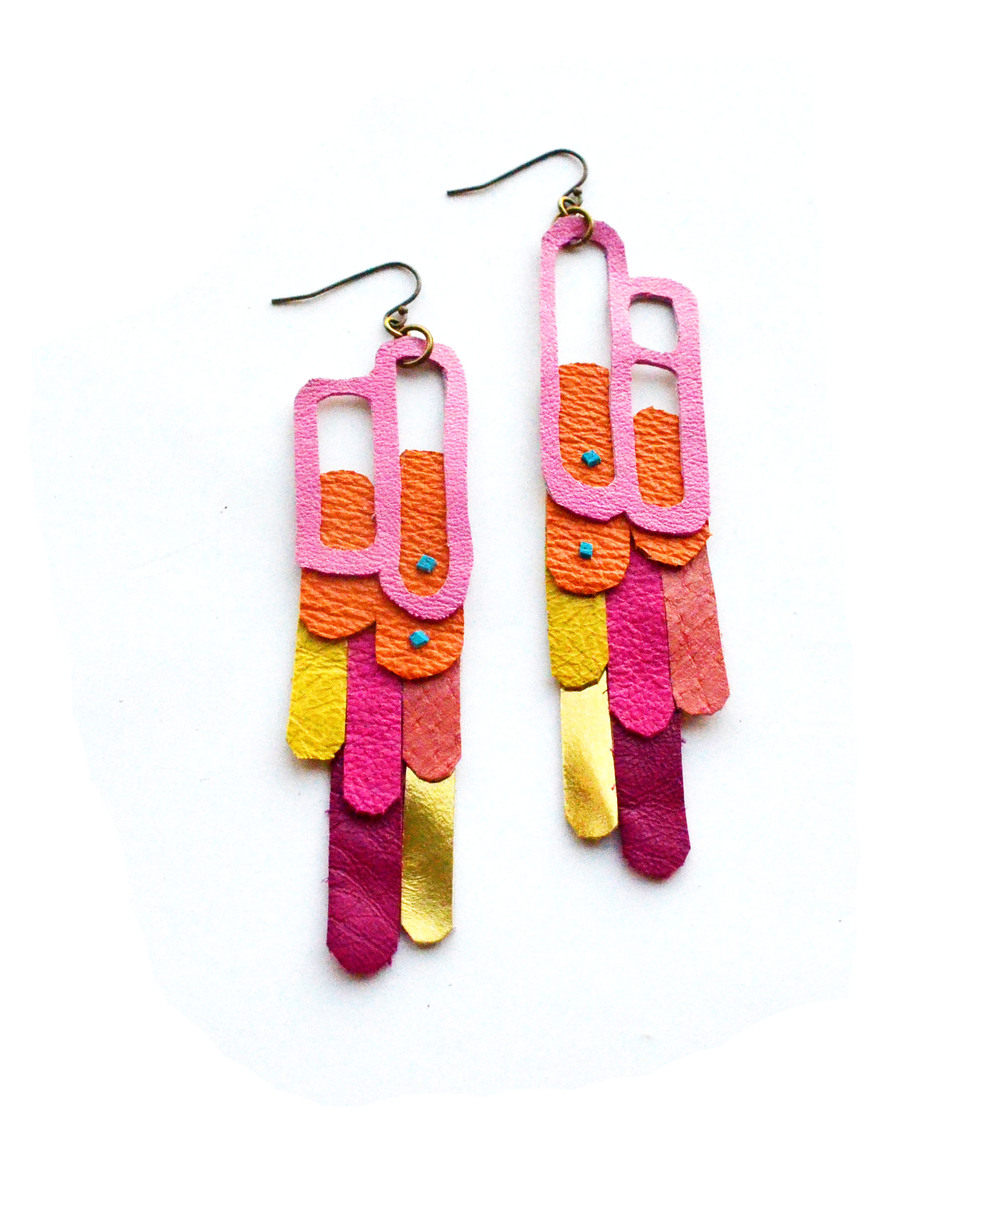 Geometric Earrings Leather Pop Art 4.jpg